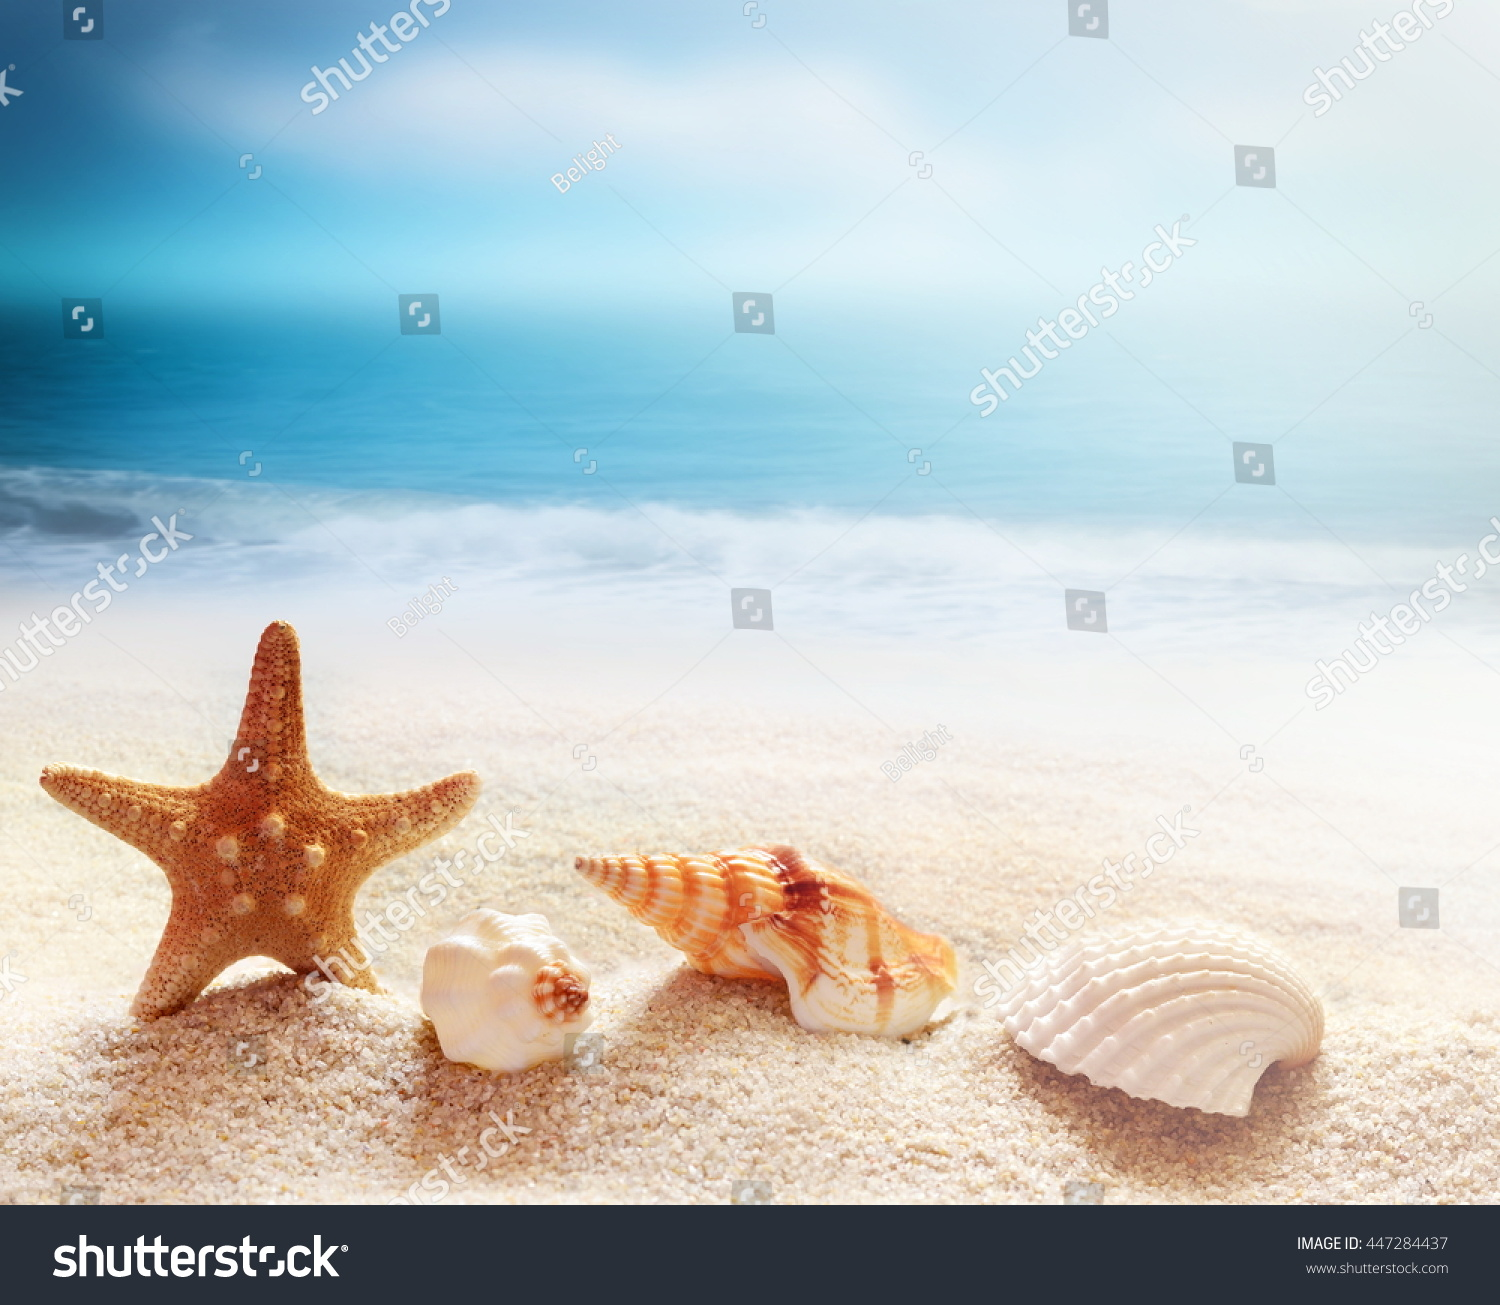 Starfish Sea Shells On Beach Ocean Stock Photo 447284437